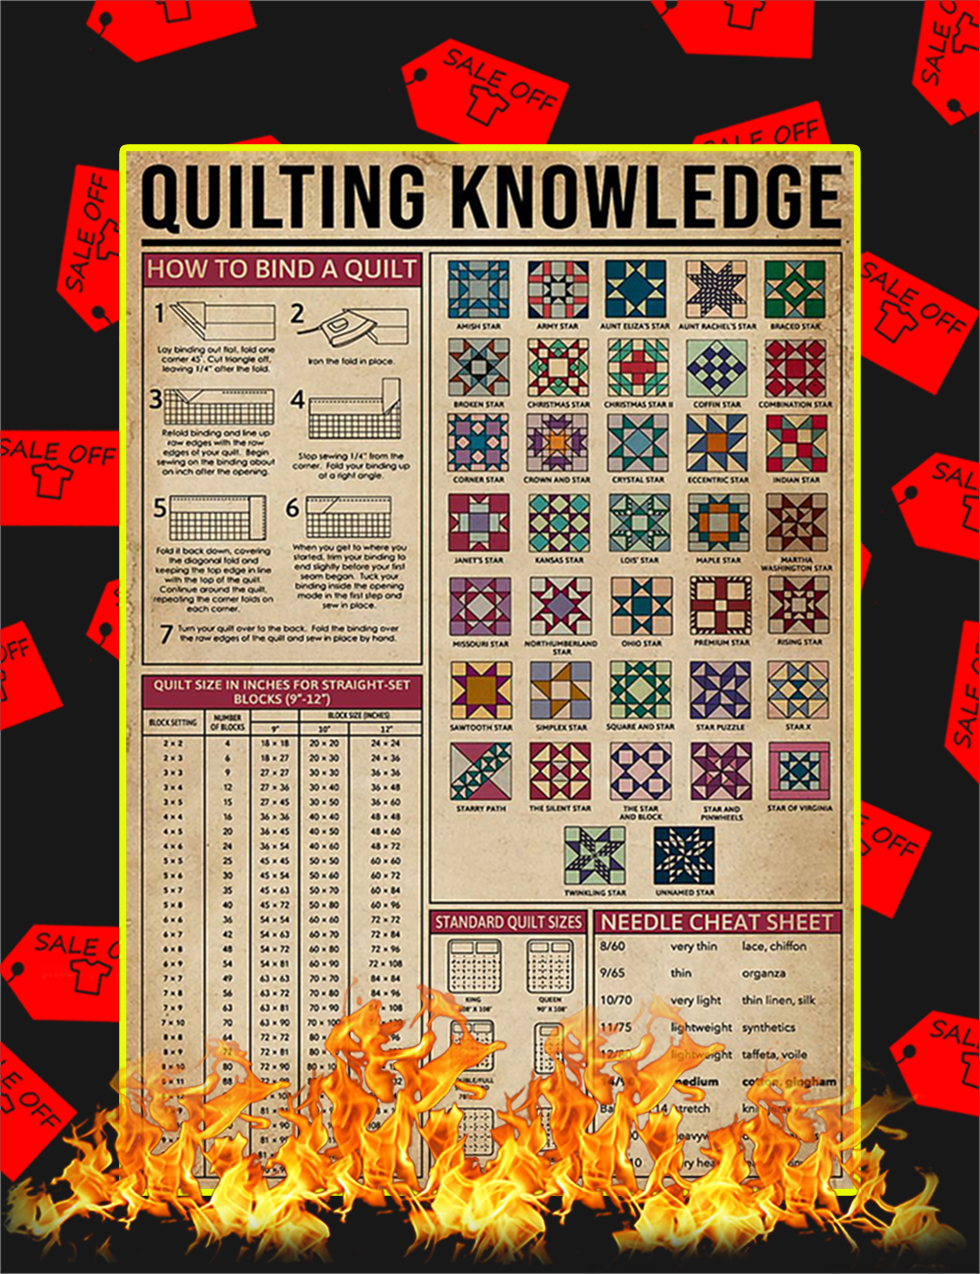 Quilting Knowledge Poster-A4